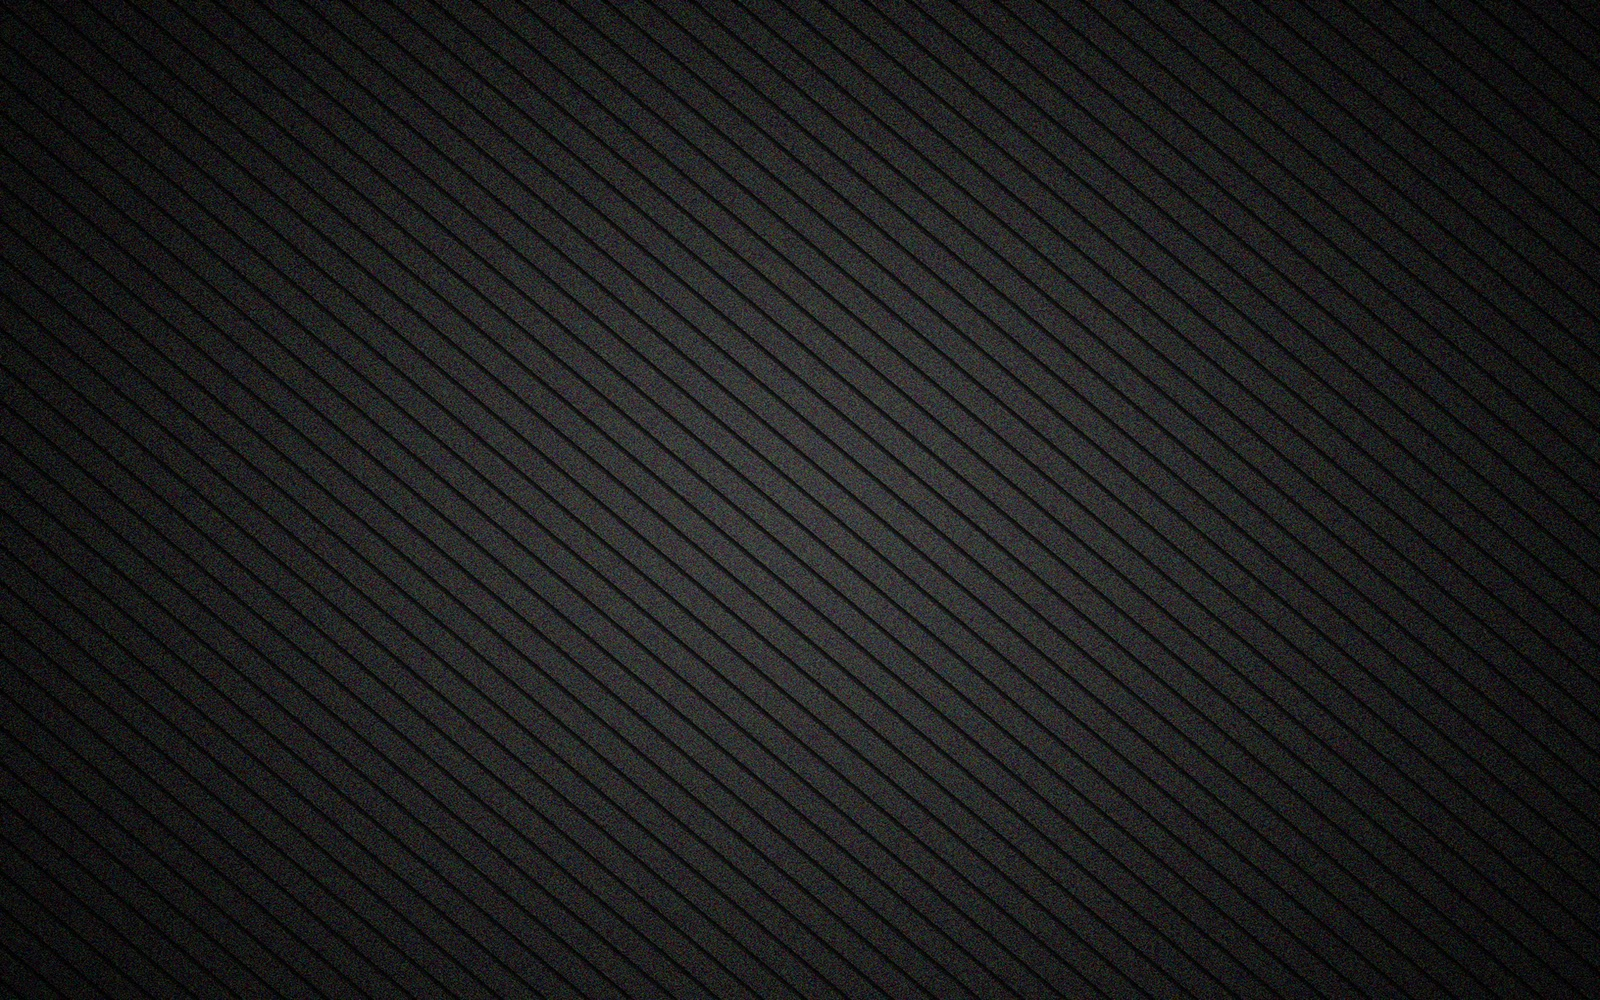 black style wallpaper download - photo #35